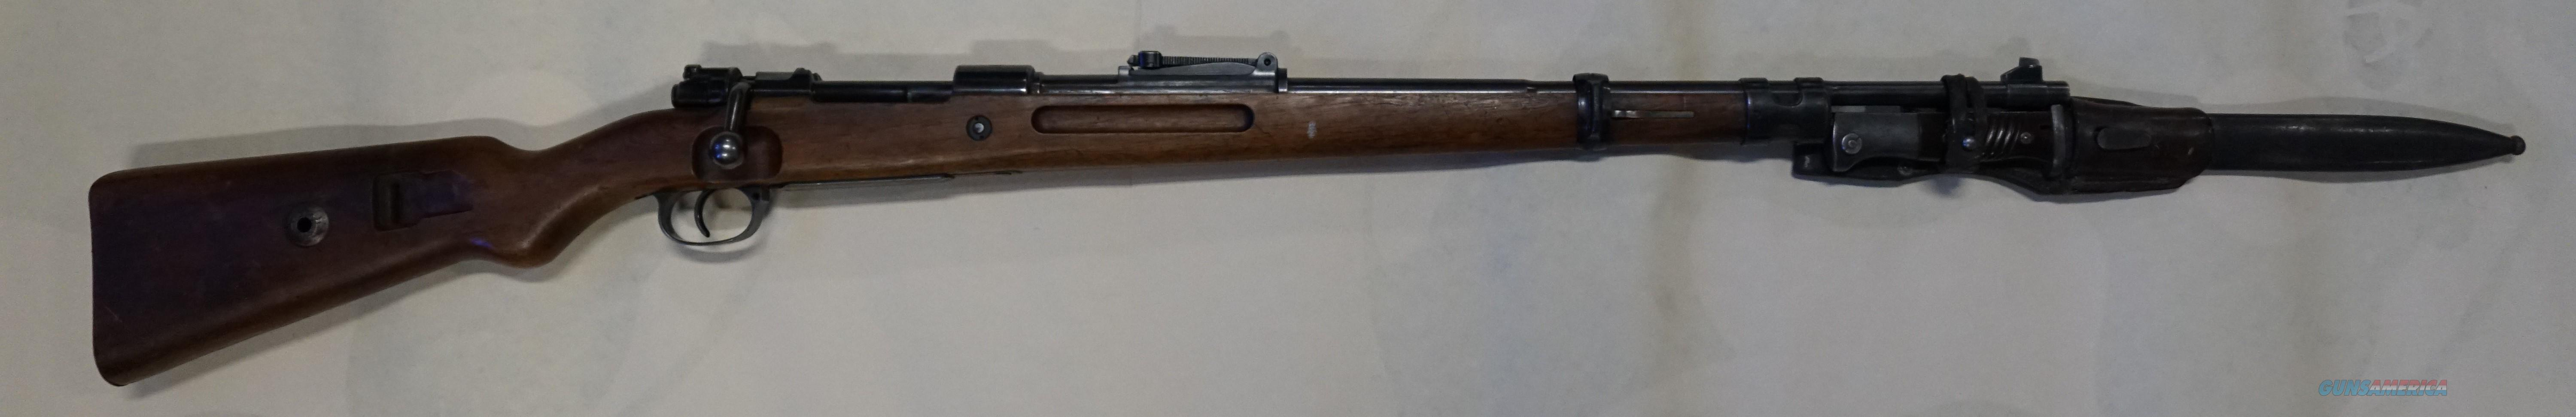 "Original ""Banner"" Mauser 8mm all matching #'s with Bayonet   Guns > Rifles > Mauser Rifles > German"